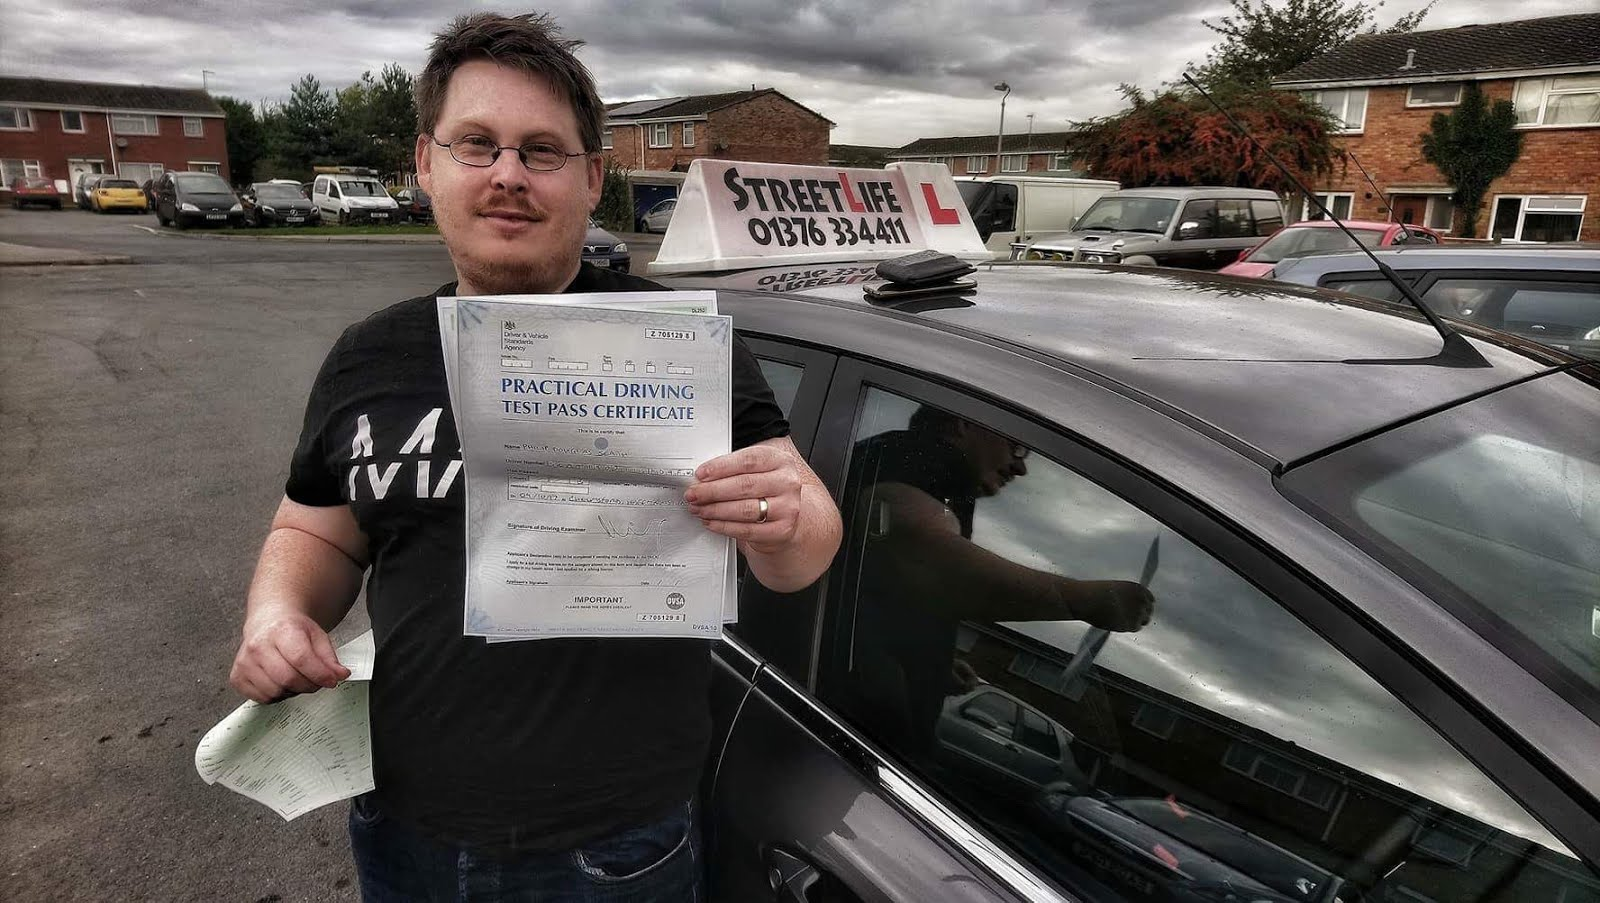 Streetlife Driving School Recent Passes Well Done Phil Seath Passed